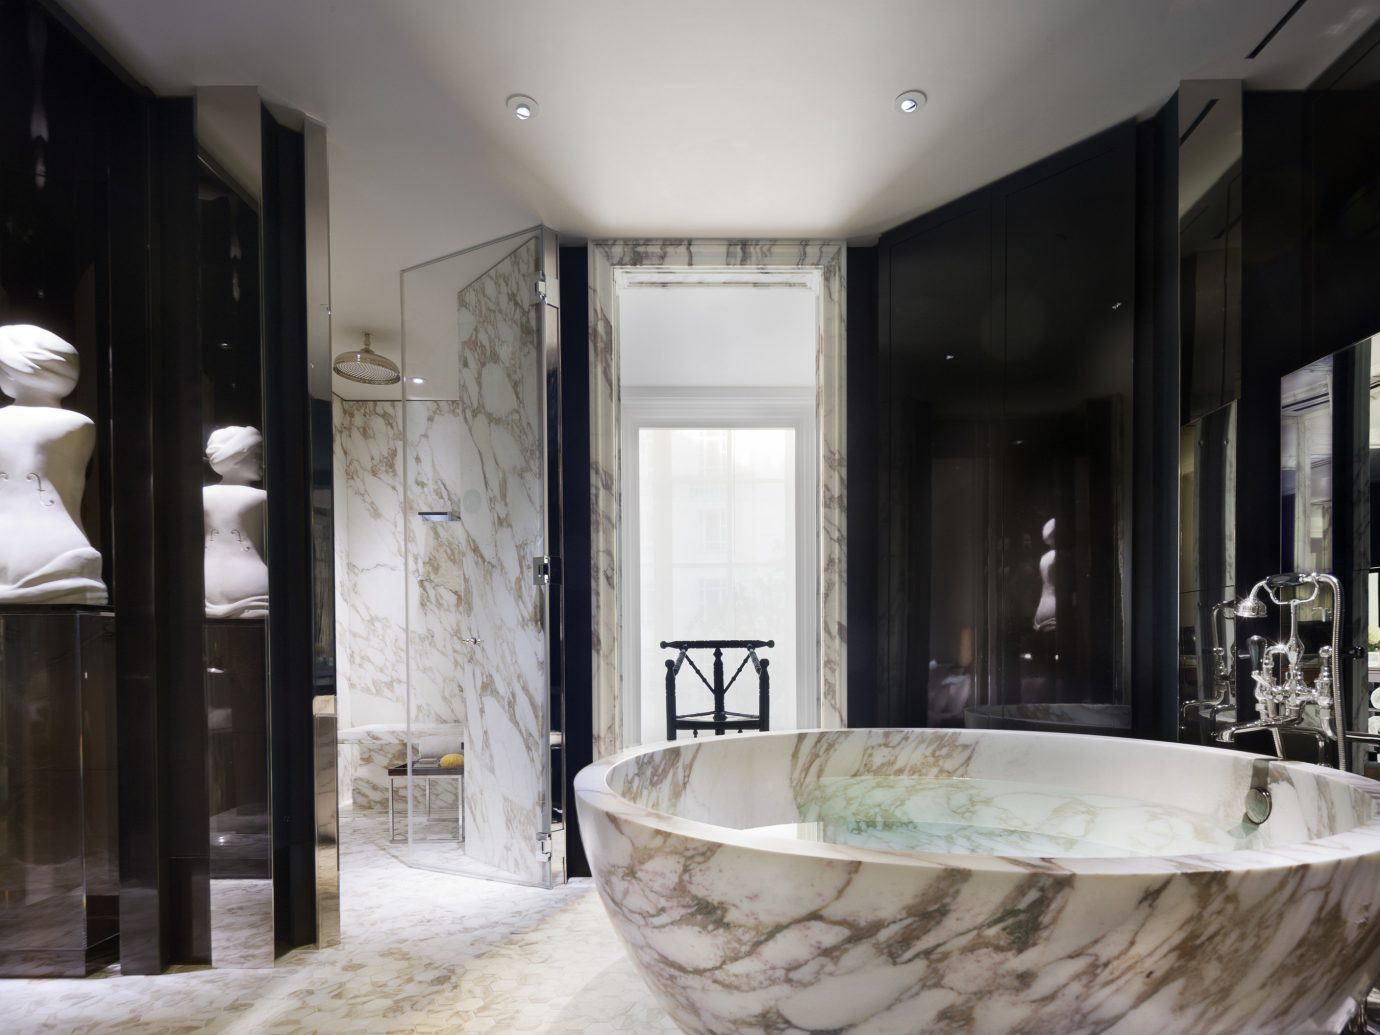 Hotels Luxury Travel indoor window room bathroom interior design home estate sink bathtub interior designer tub Bath